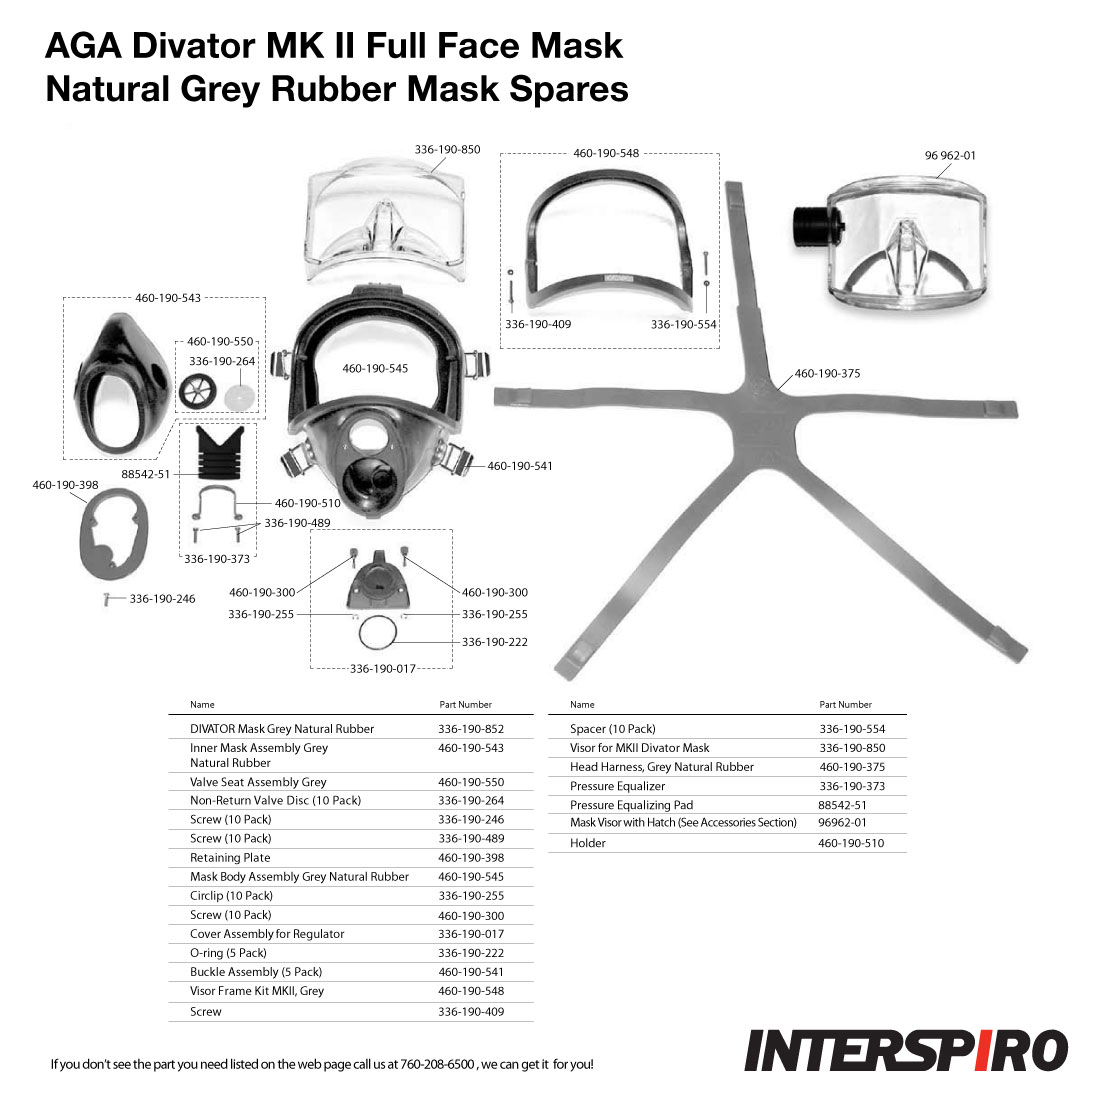 Mask Spares - Parts - AGA Divator MK II with Natural Rubber